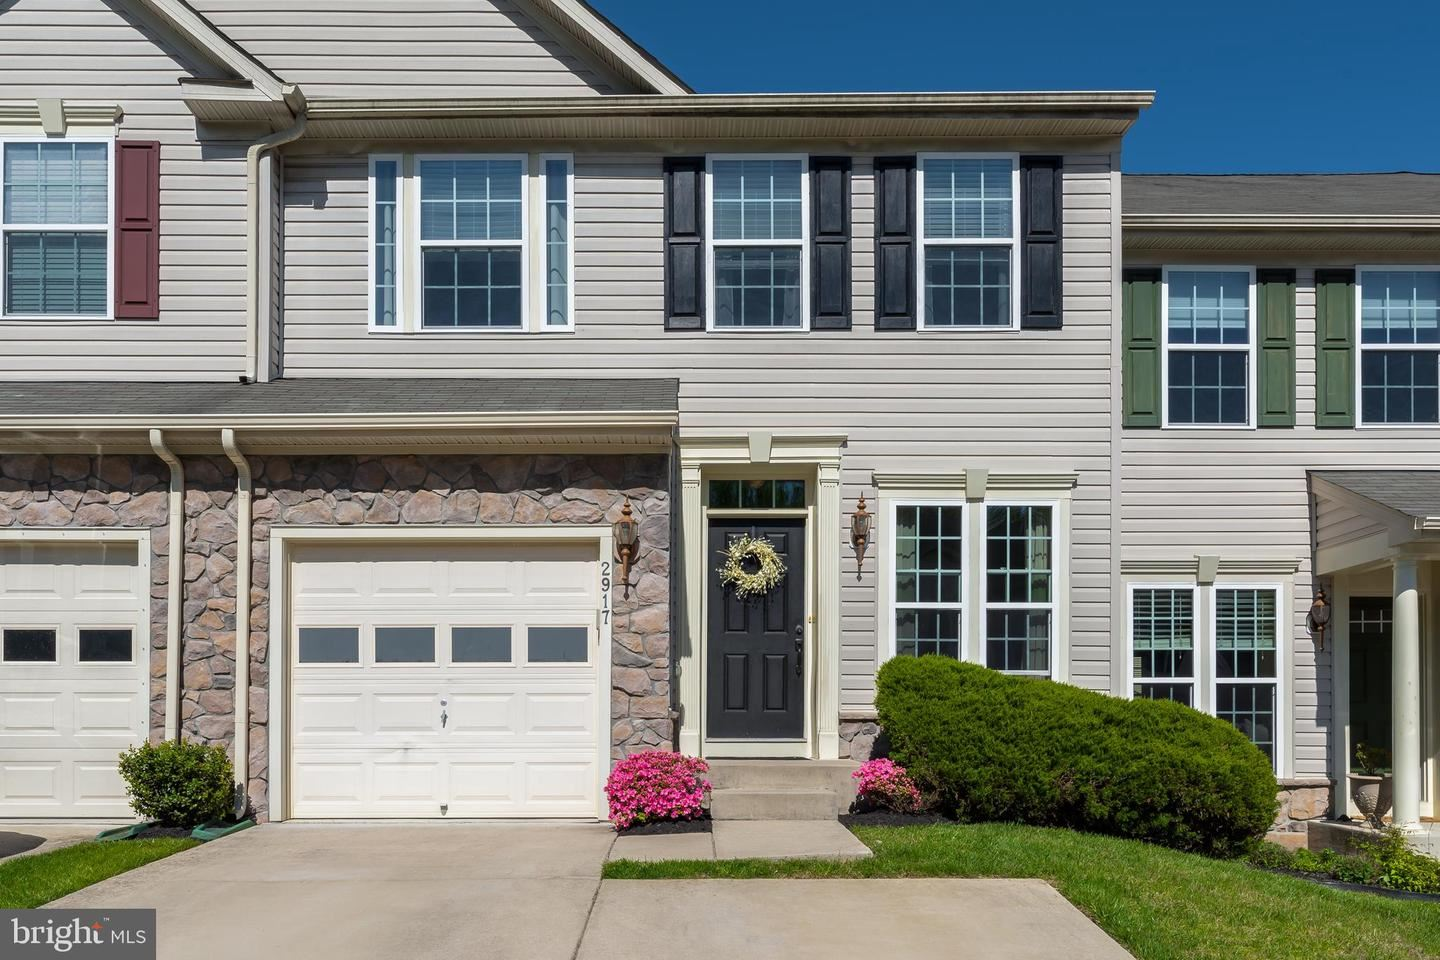 2917 LOMOND PL, Abingdon, MD 21009 - MLS#: MDHR259392